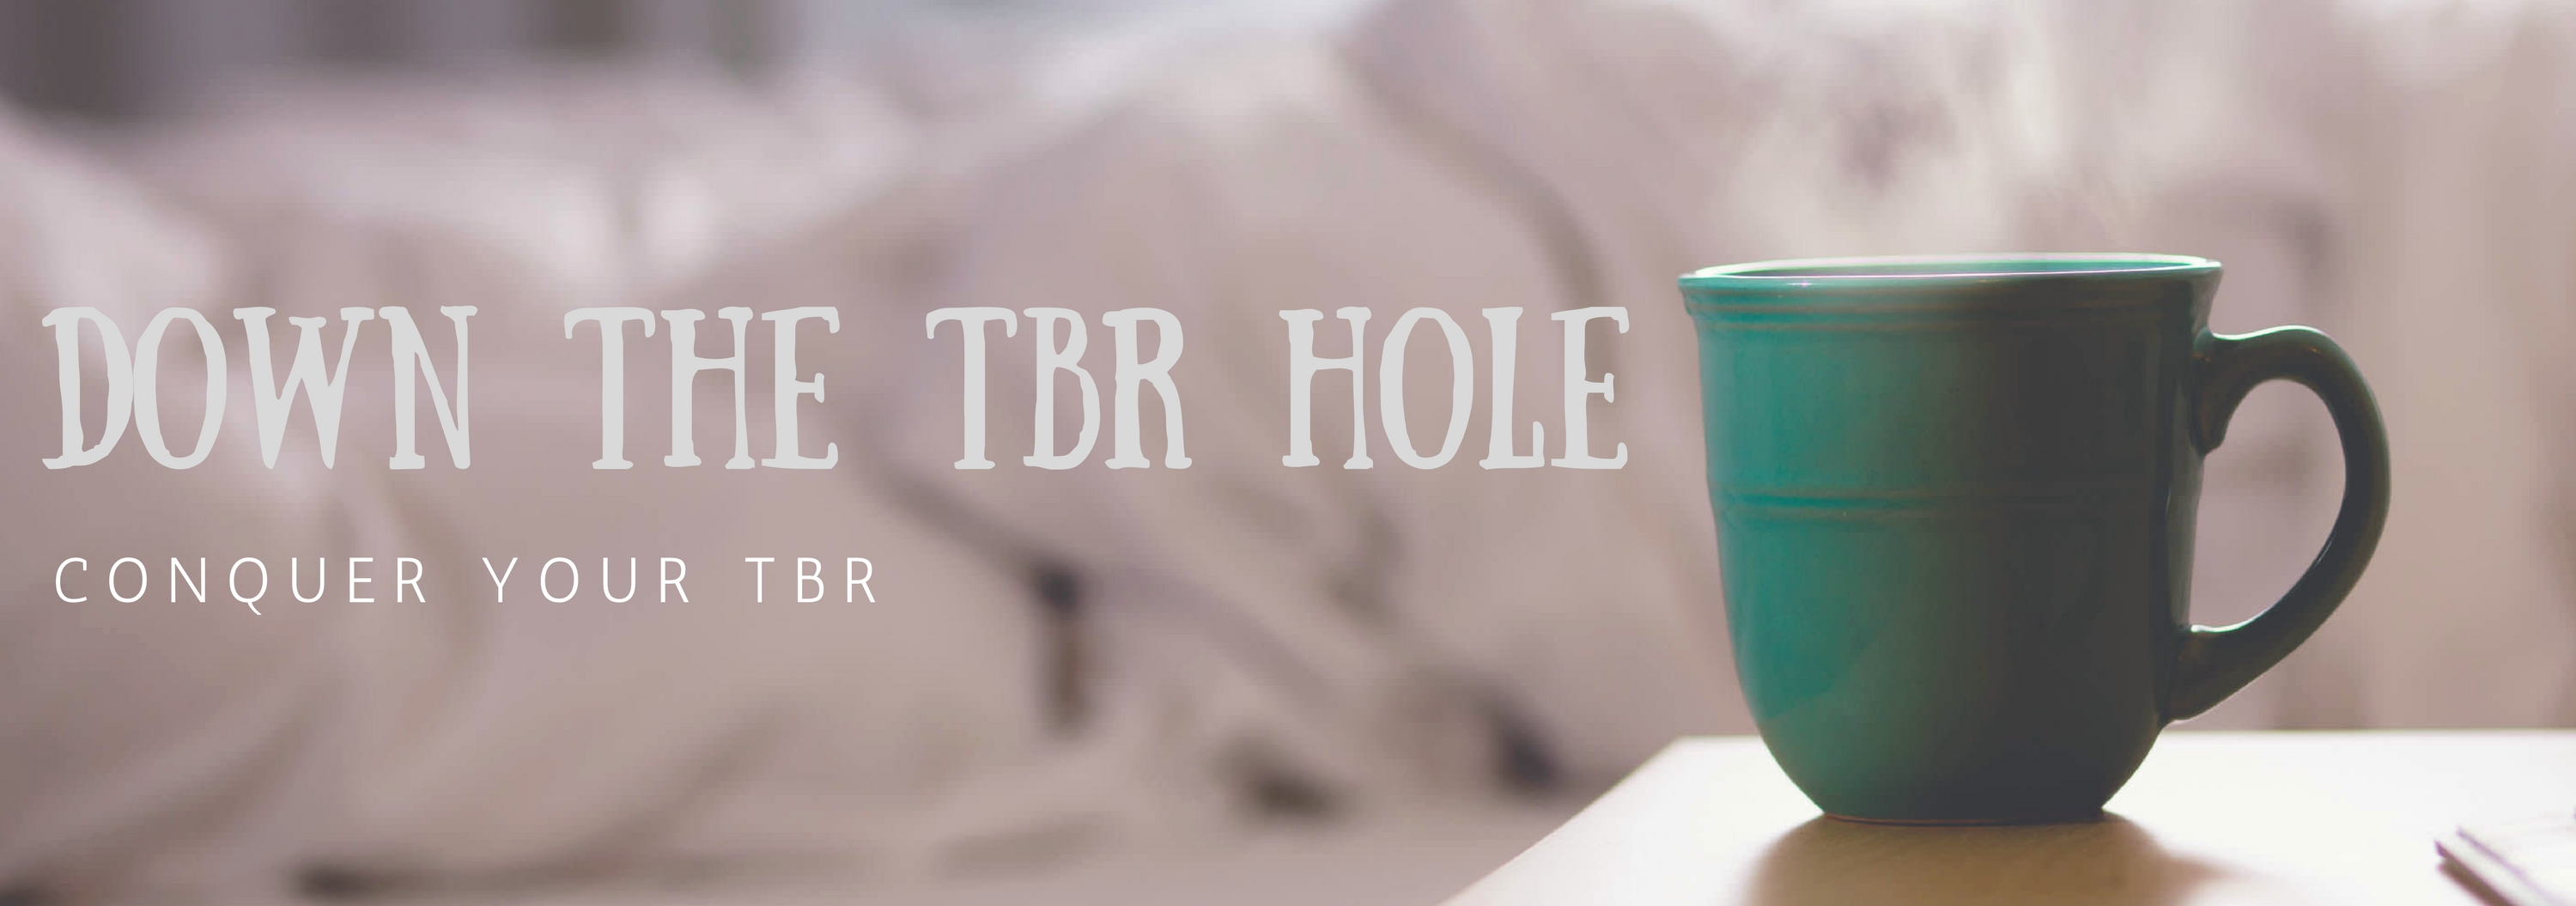 Down the TBR hole | Conquer Your TBR #2